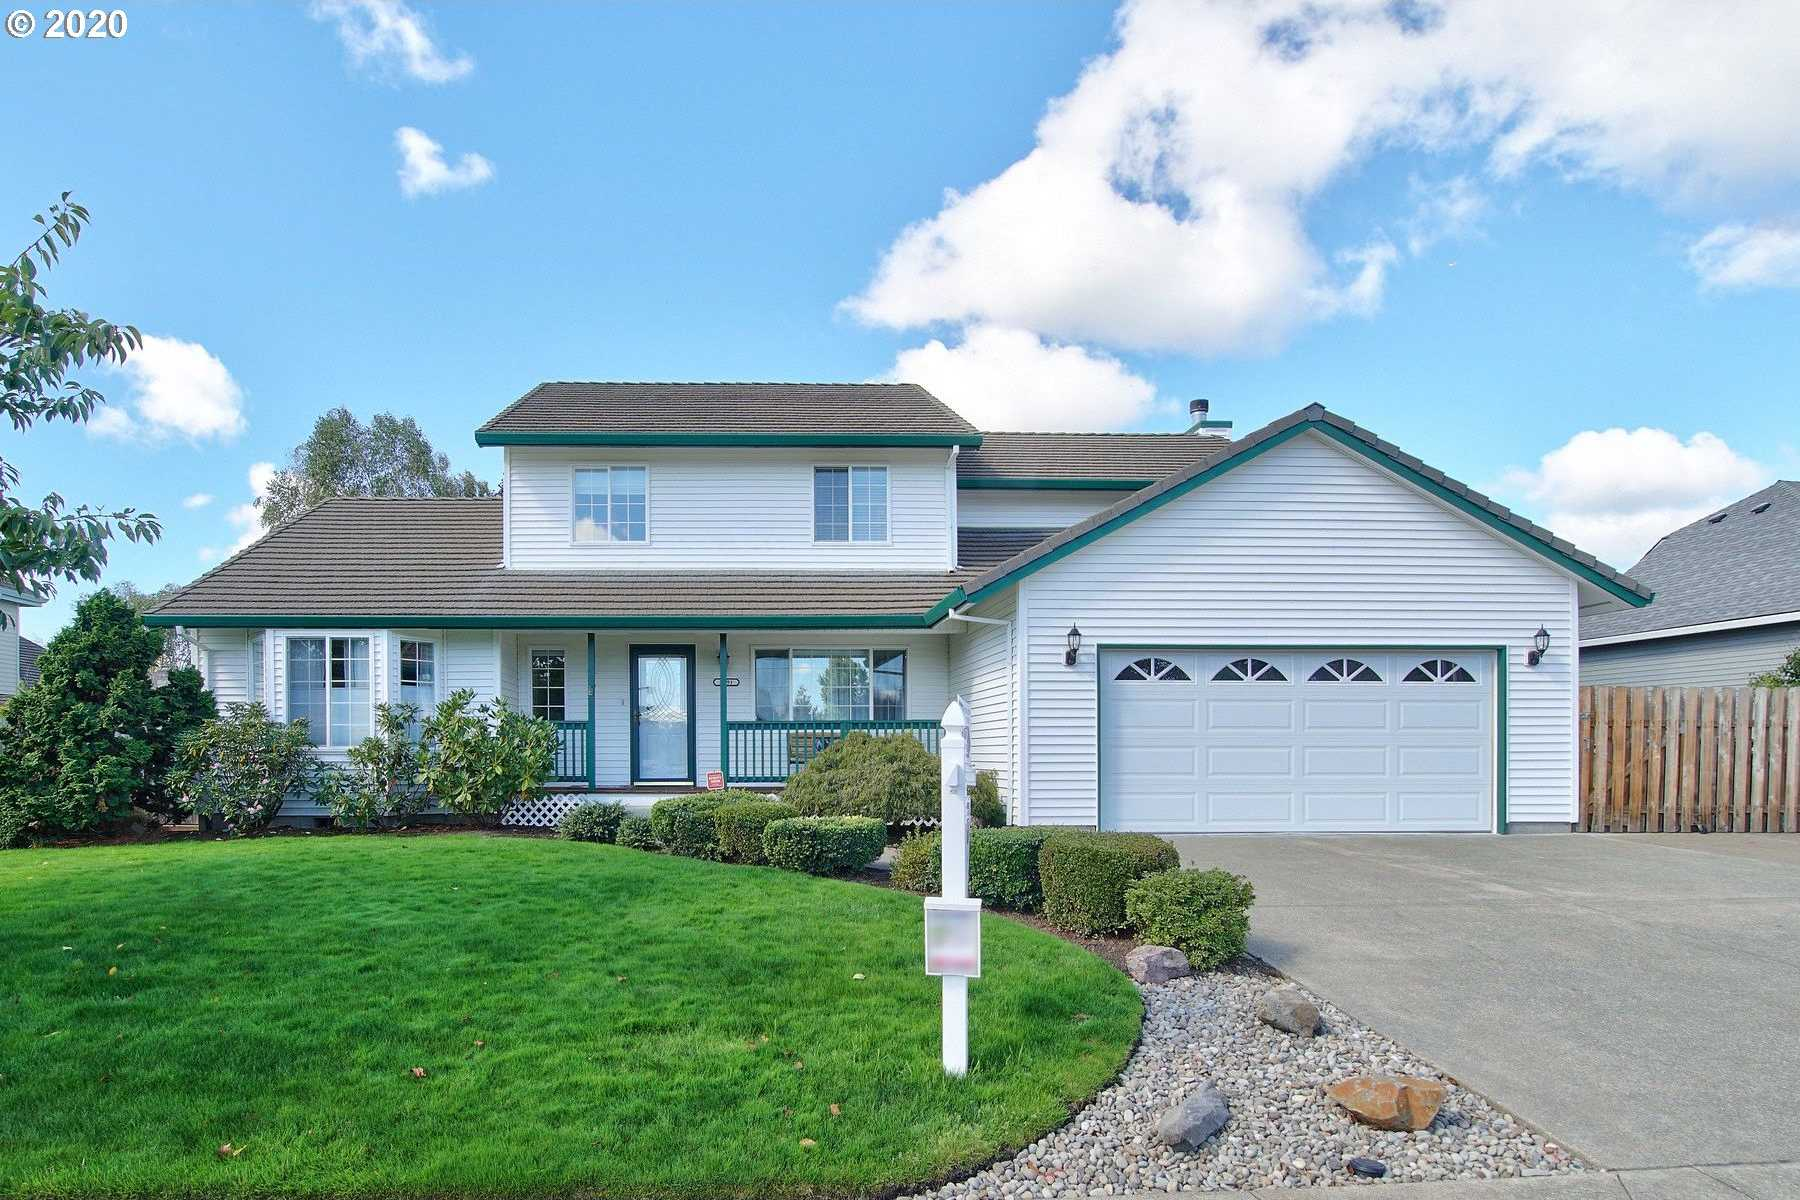 $535,000 - 4Br/3Ba -  for Sale in Compton Addition, Mcminnville